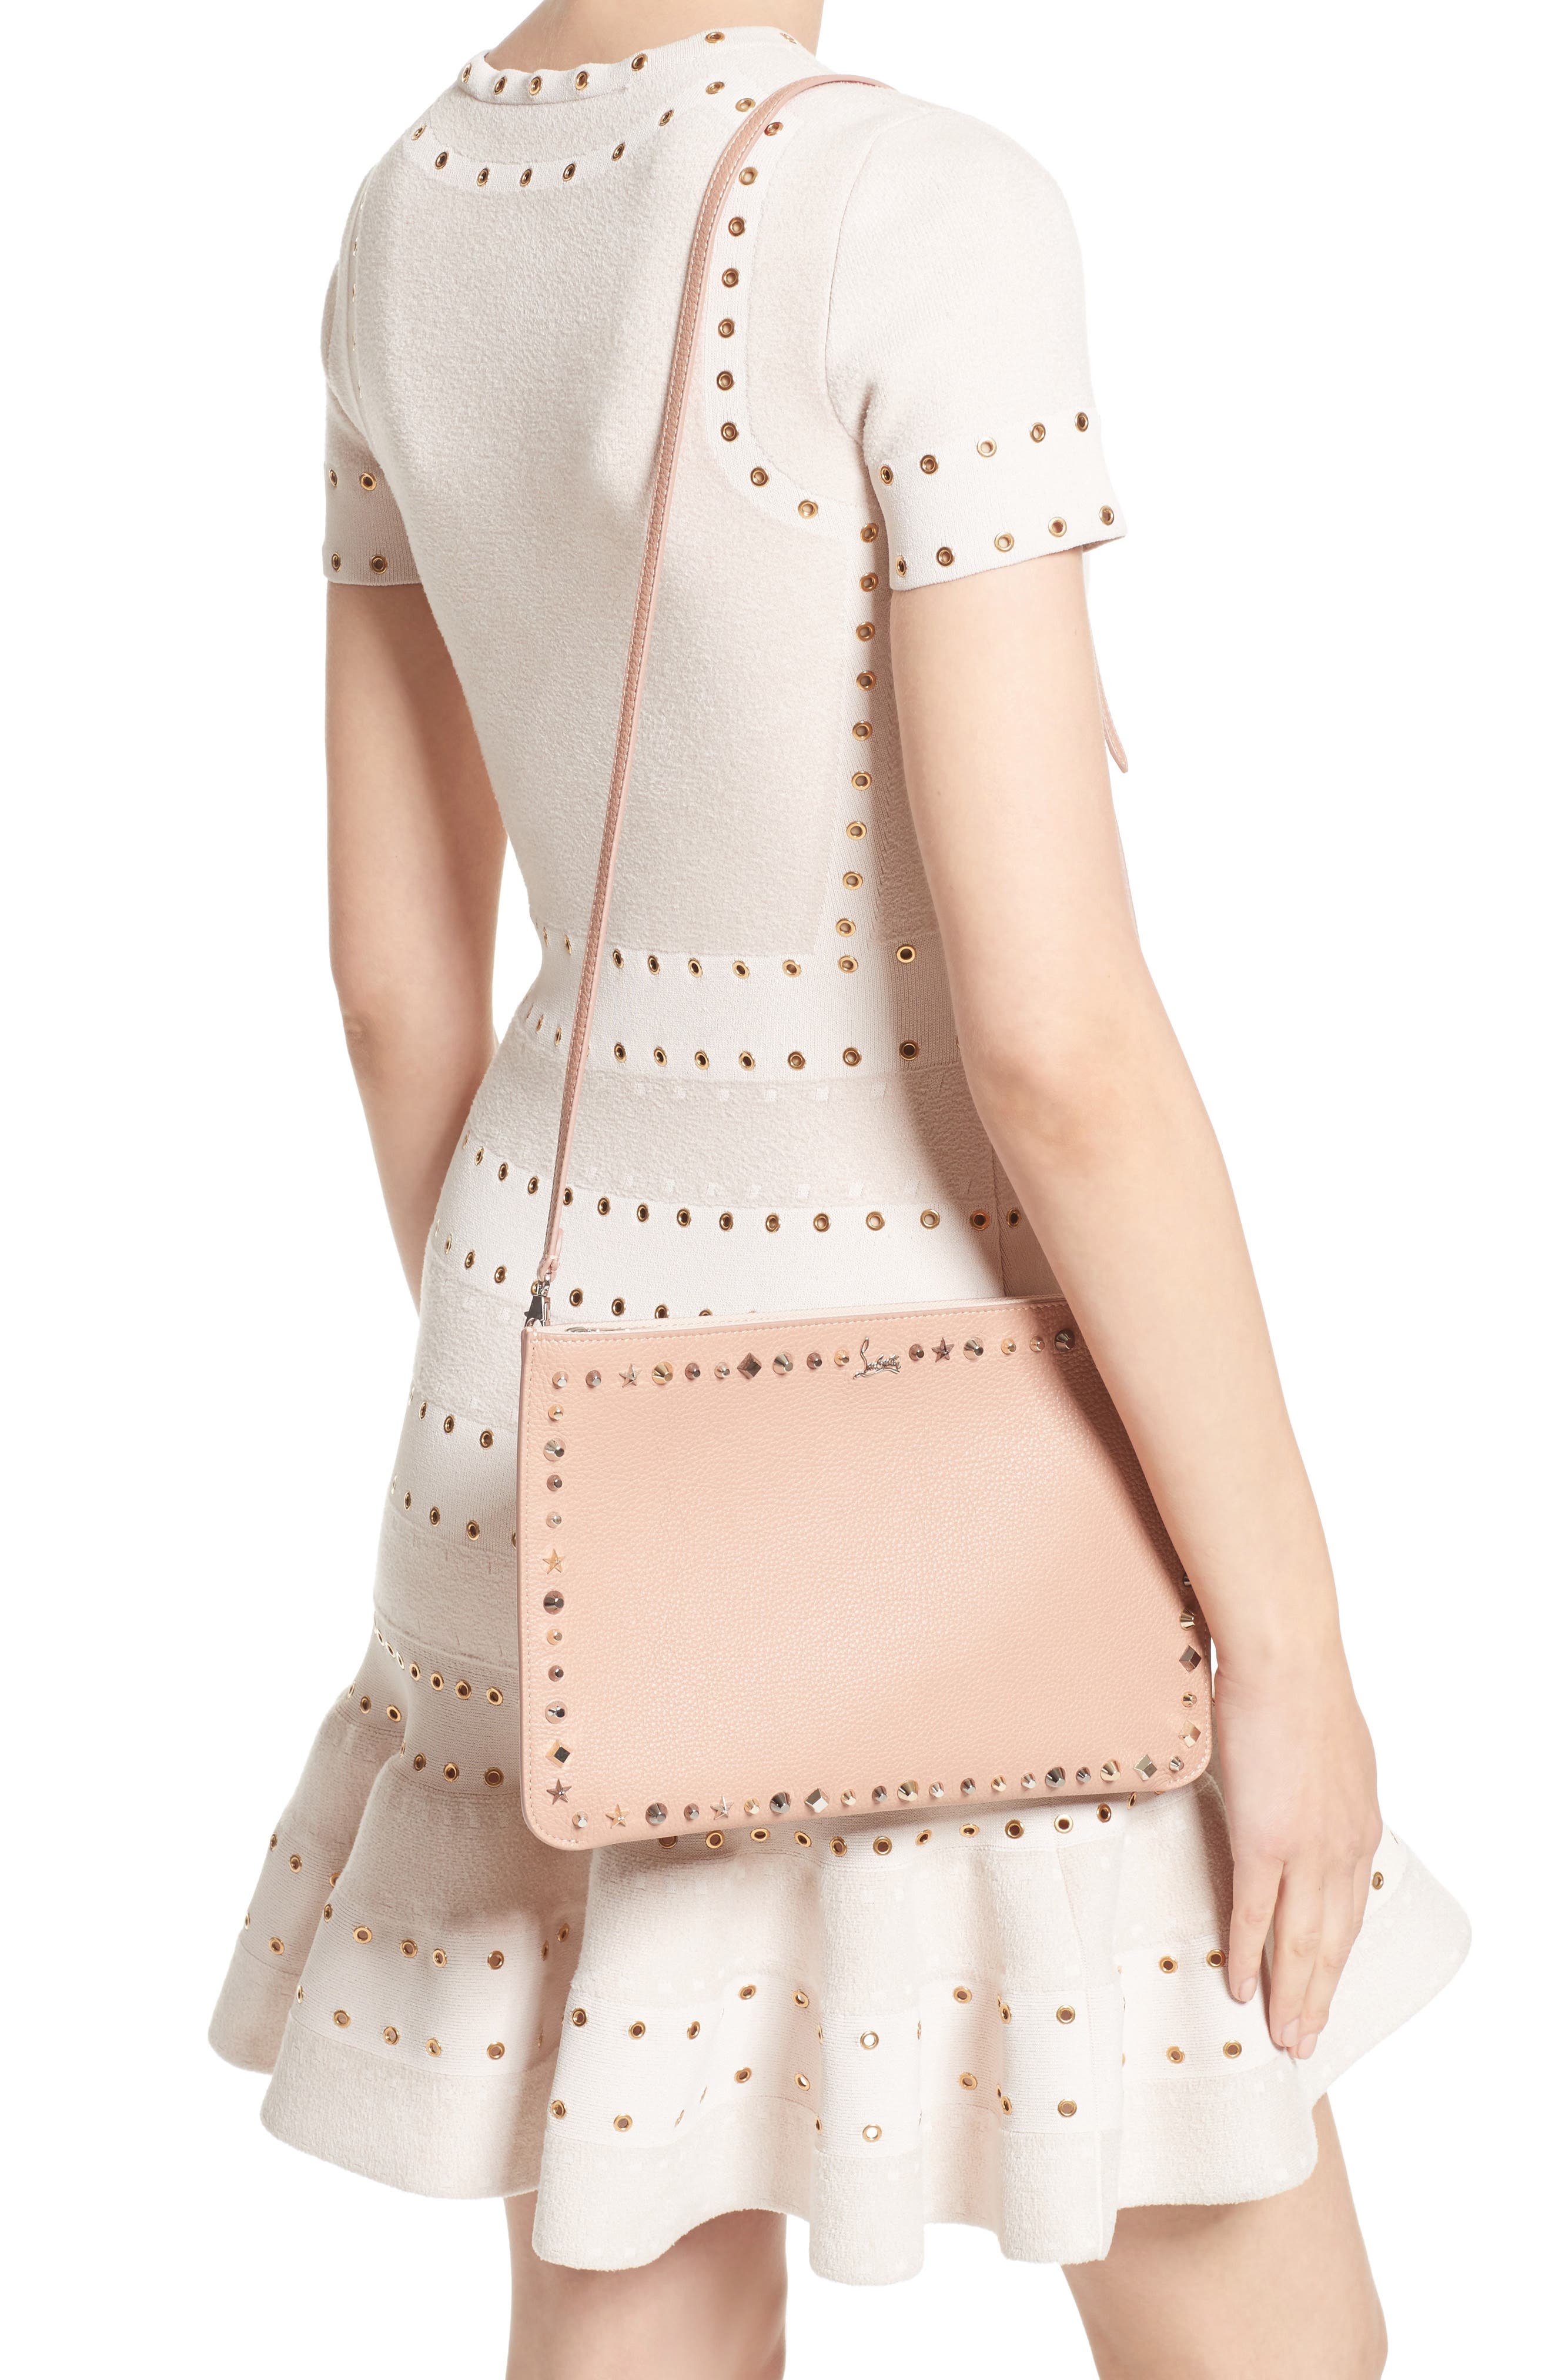 Loubiclutch Spiked Leather Clutch,                             Alternate thumbnail 2, color,                             Nude/ Multimetal